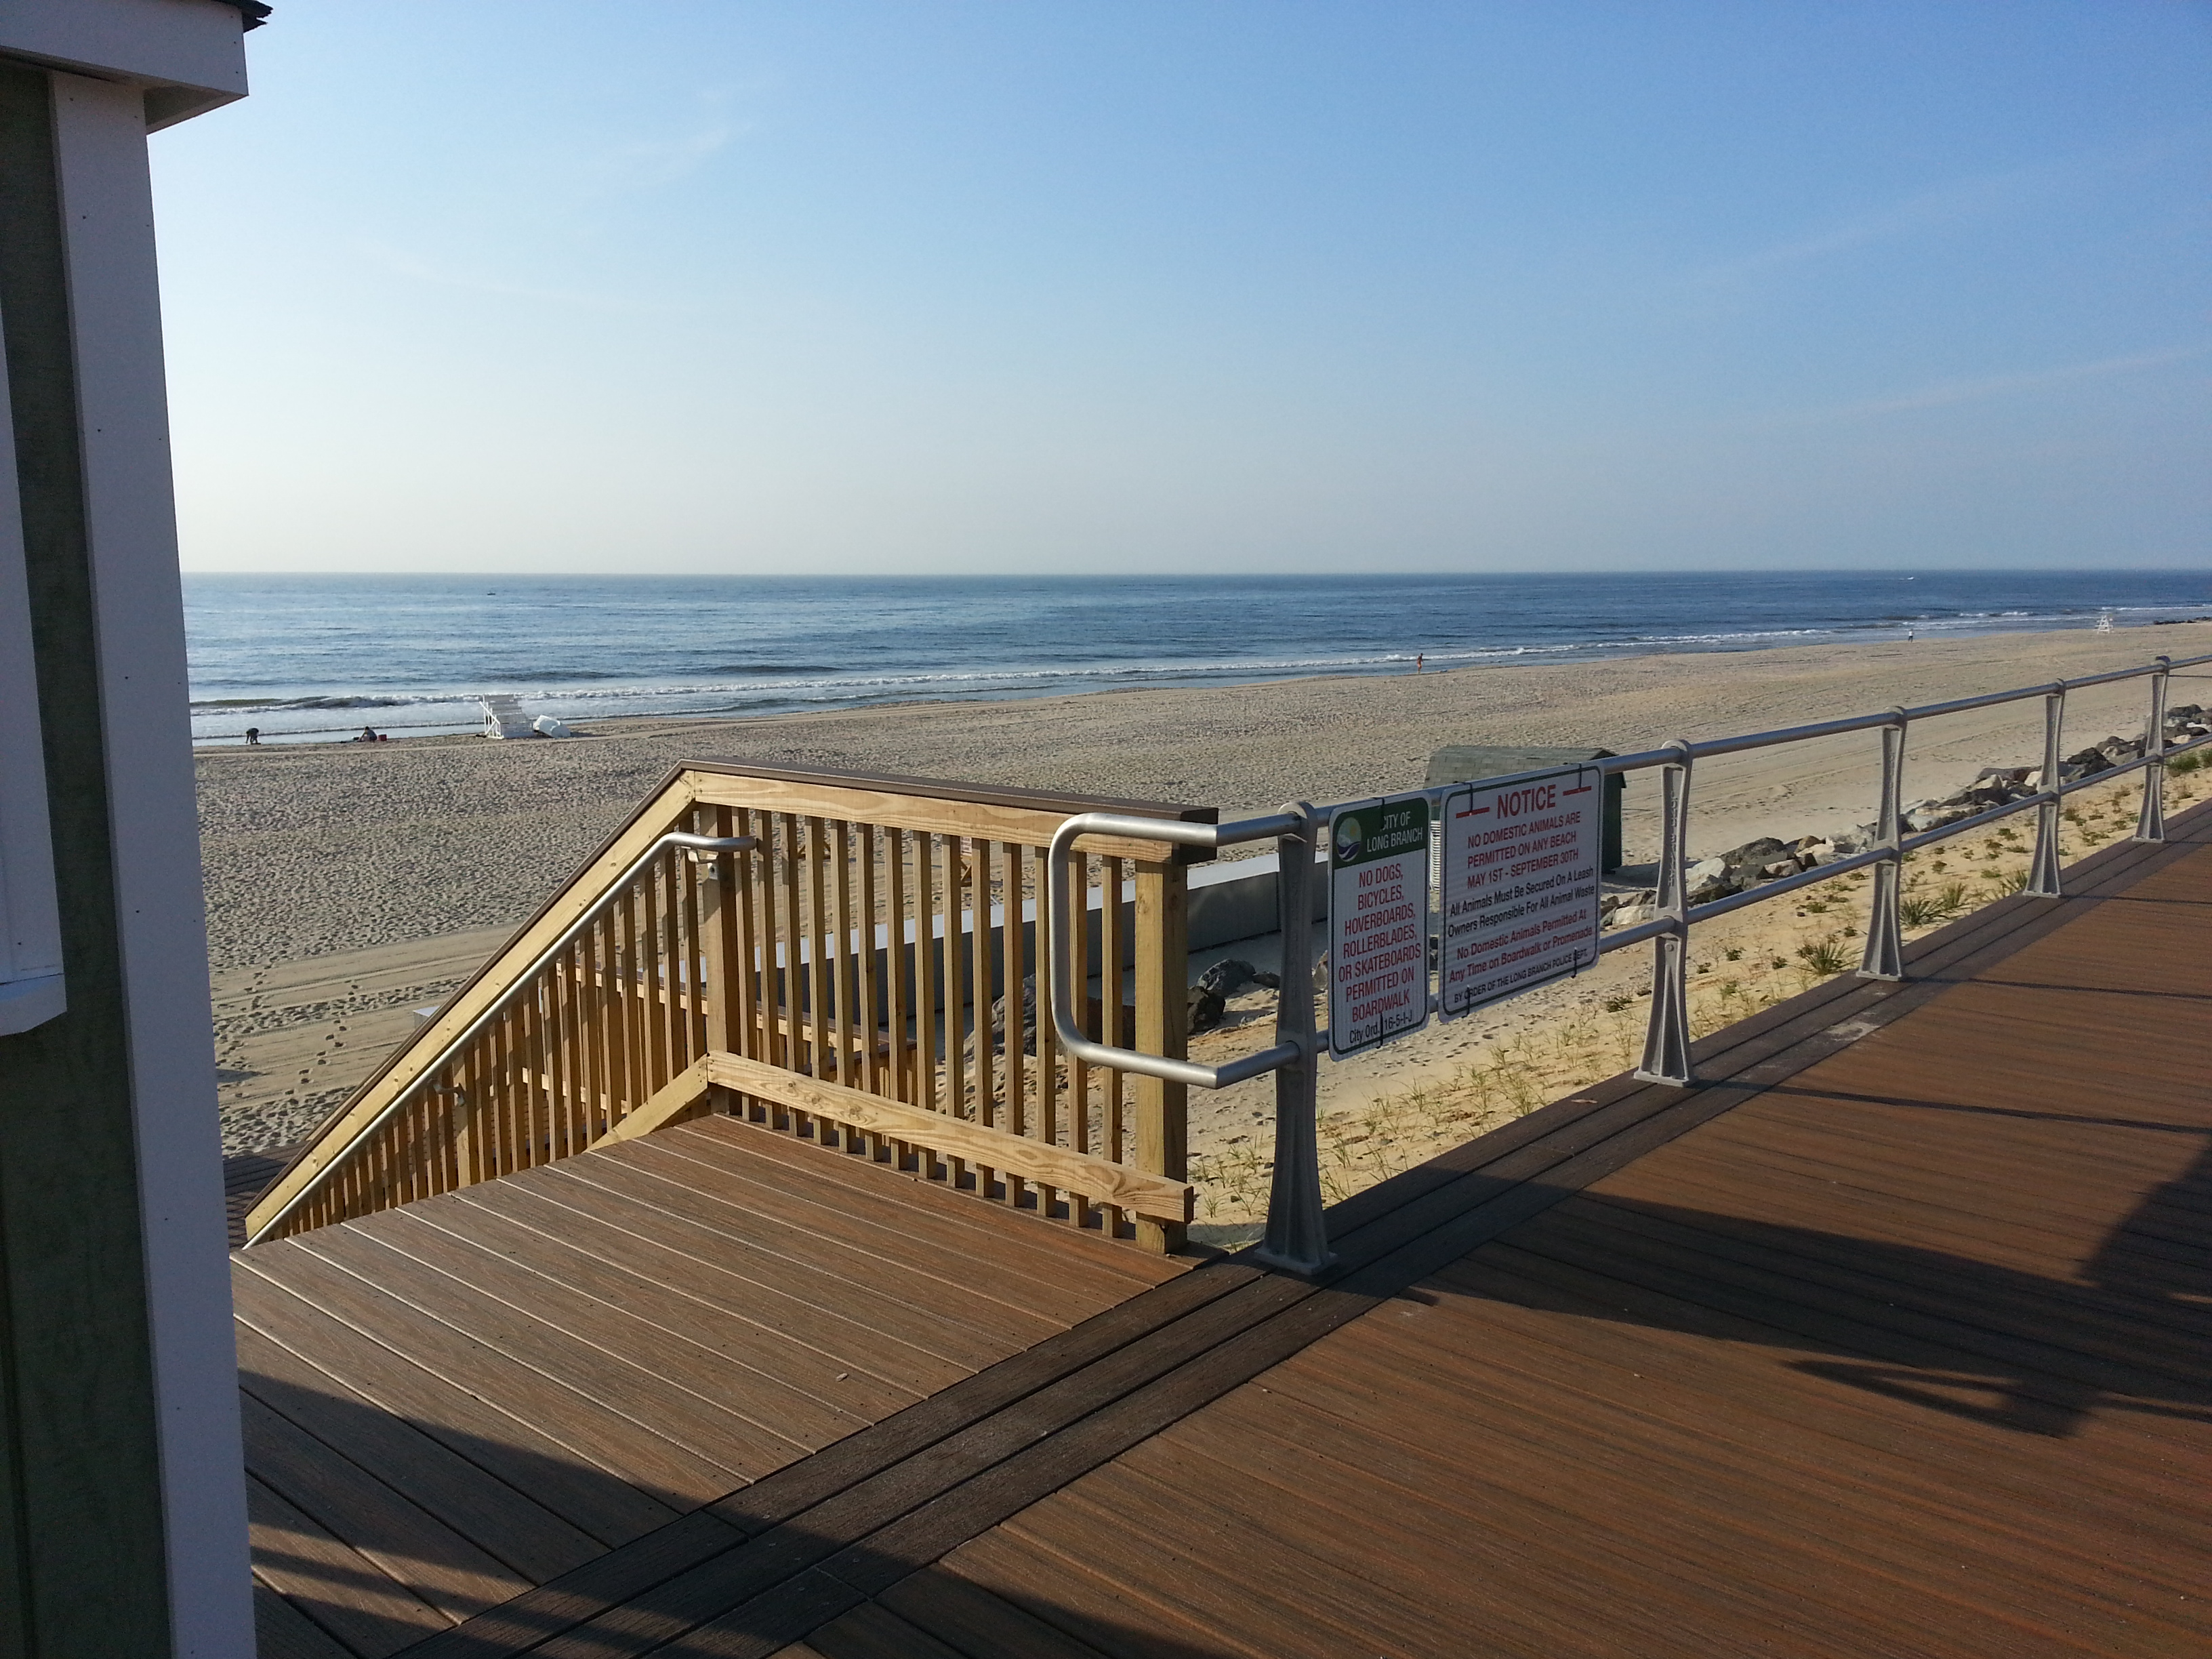 At the southeast corner of the property is this access to the Long Branch beach.